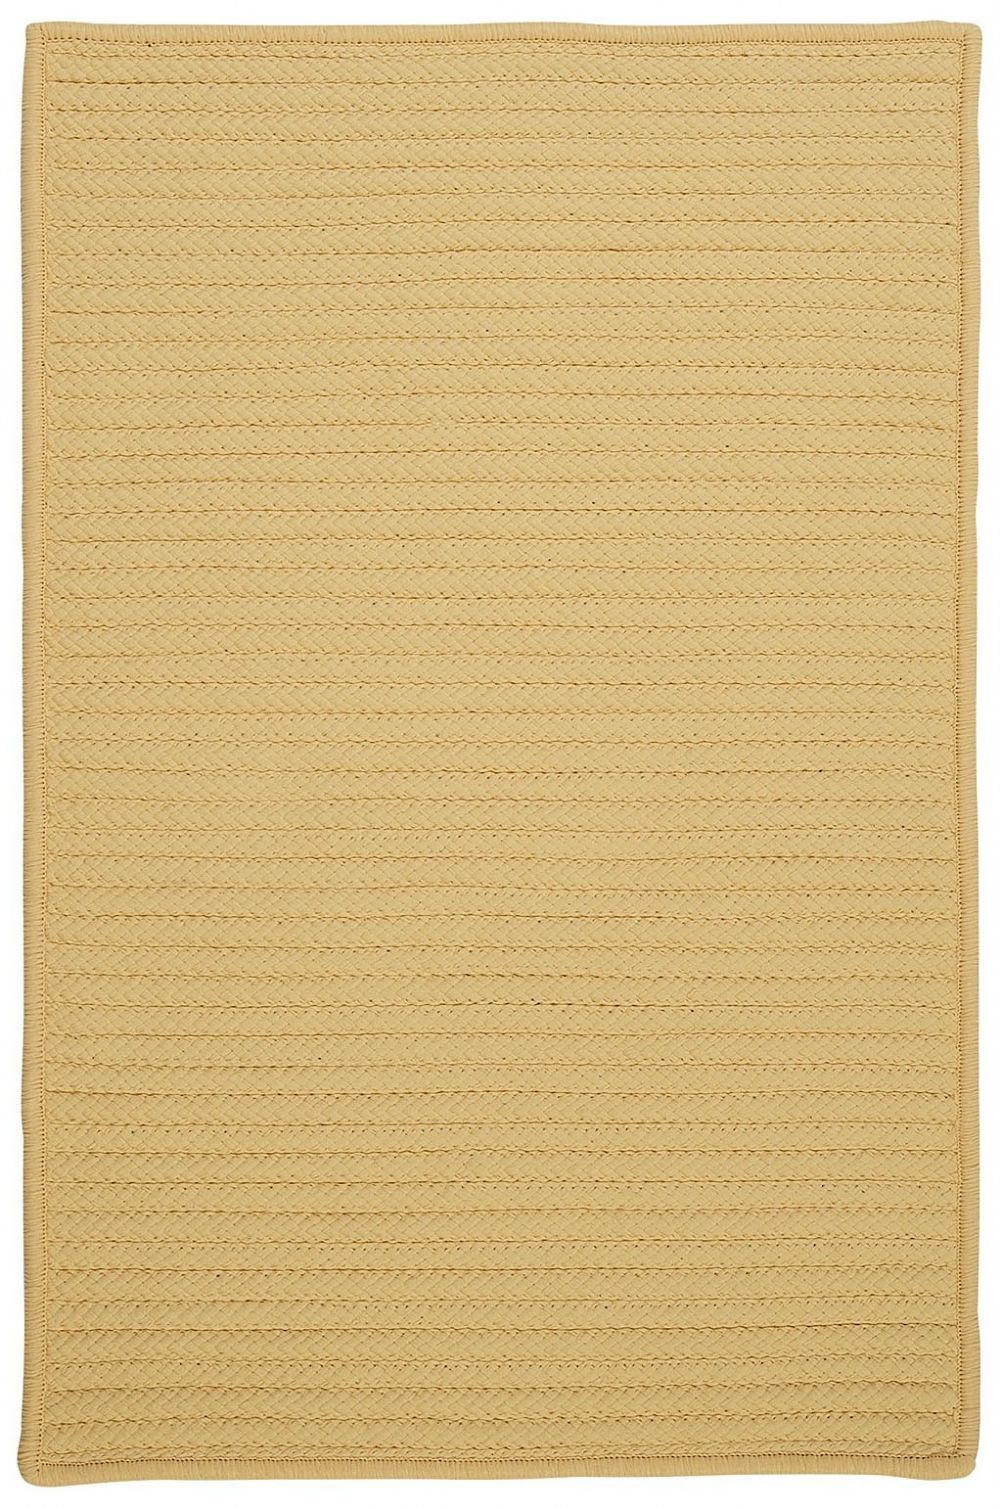 colonial mills simply home solid braided area rug collection